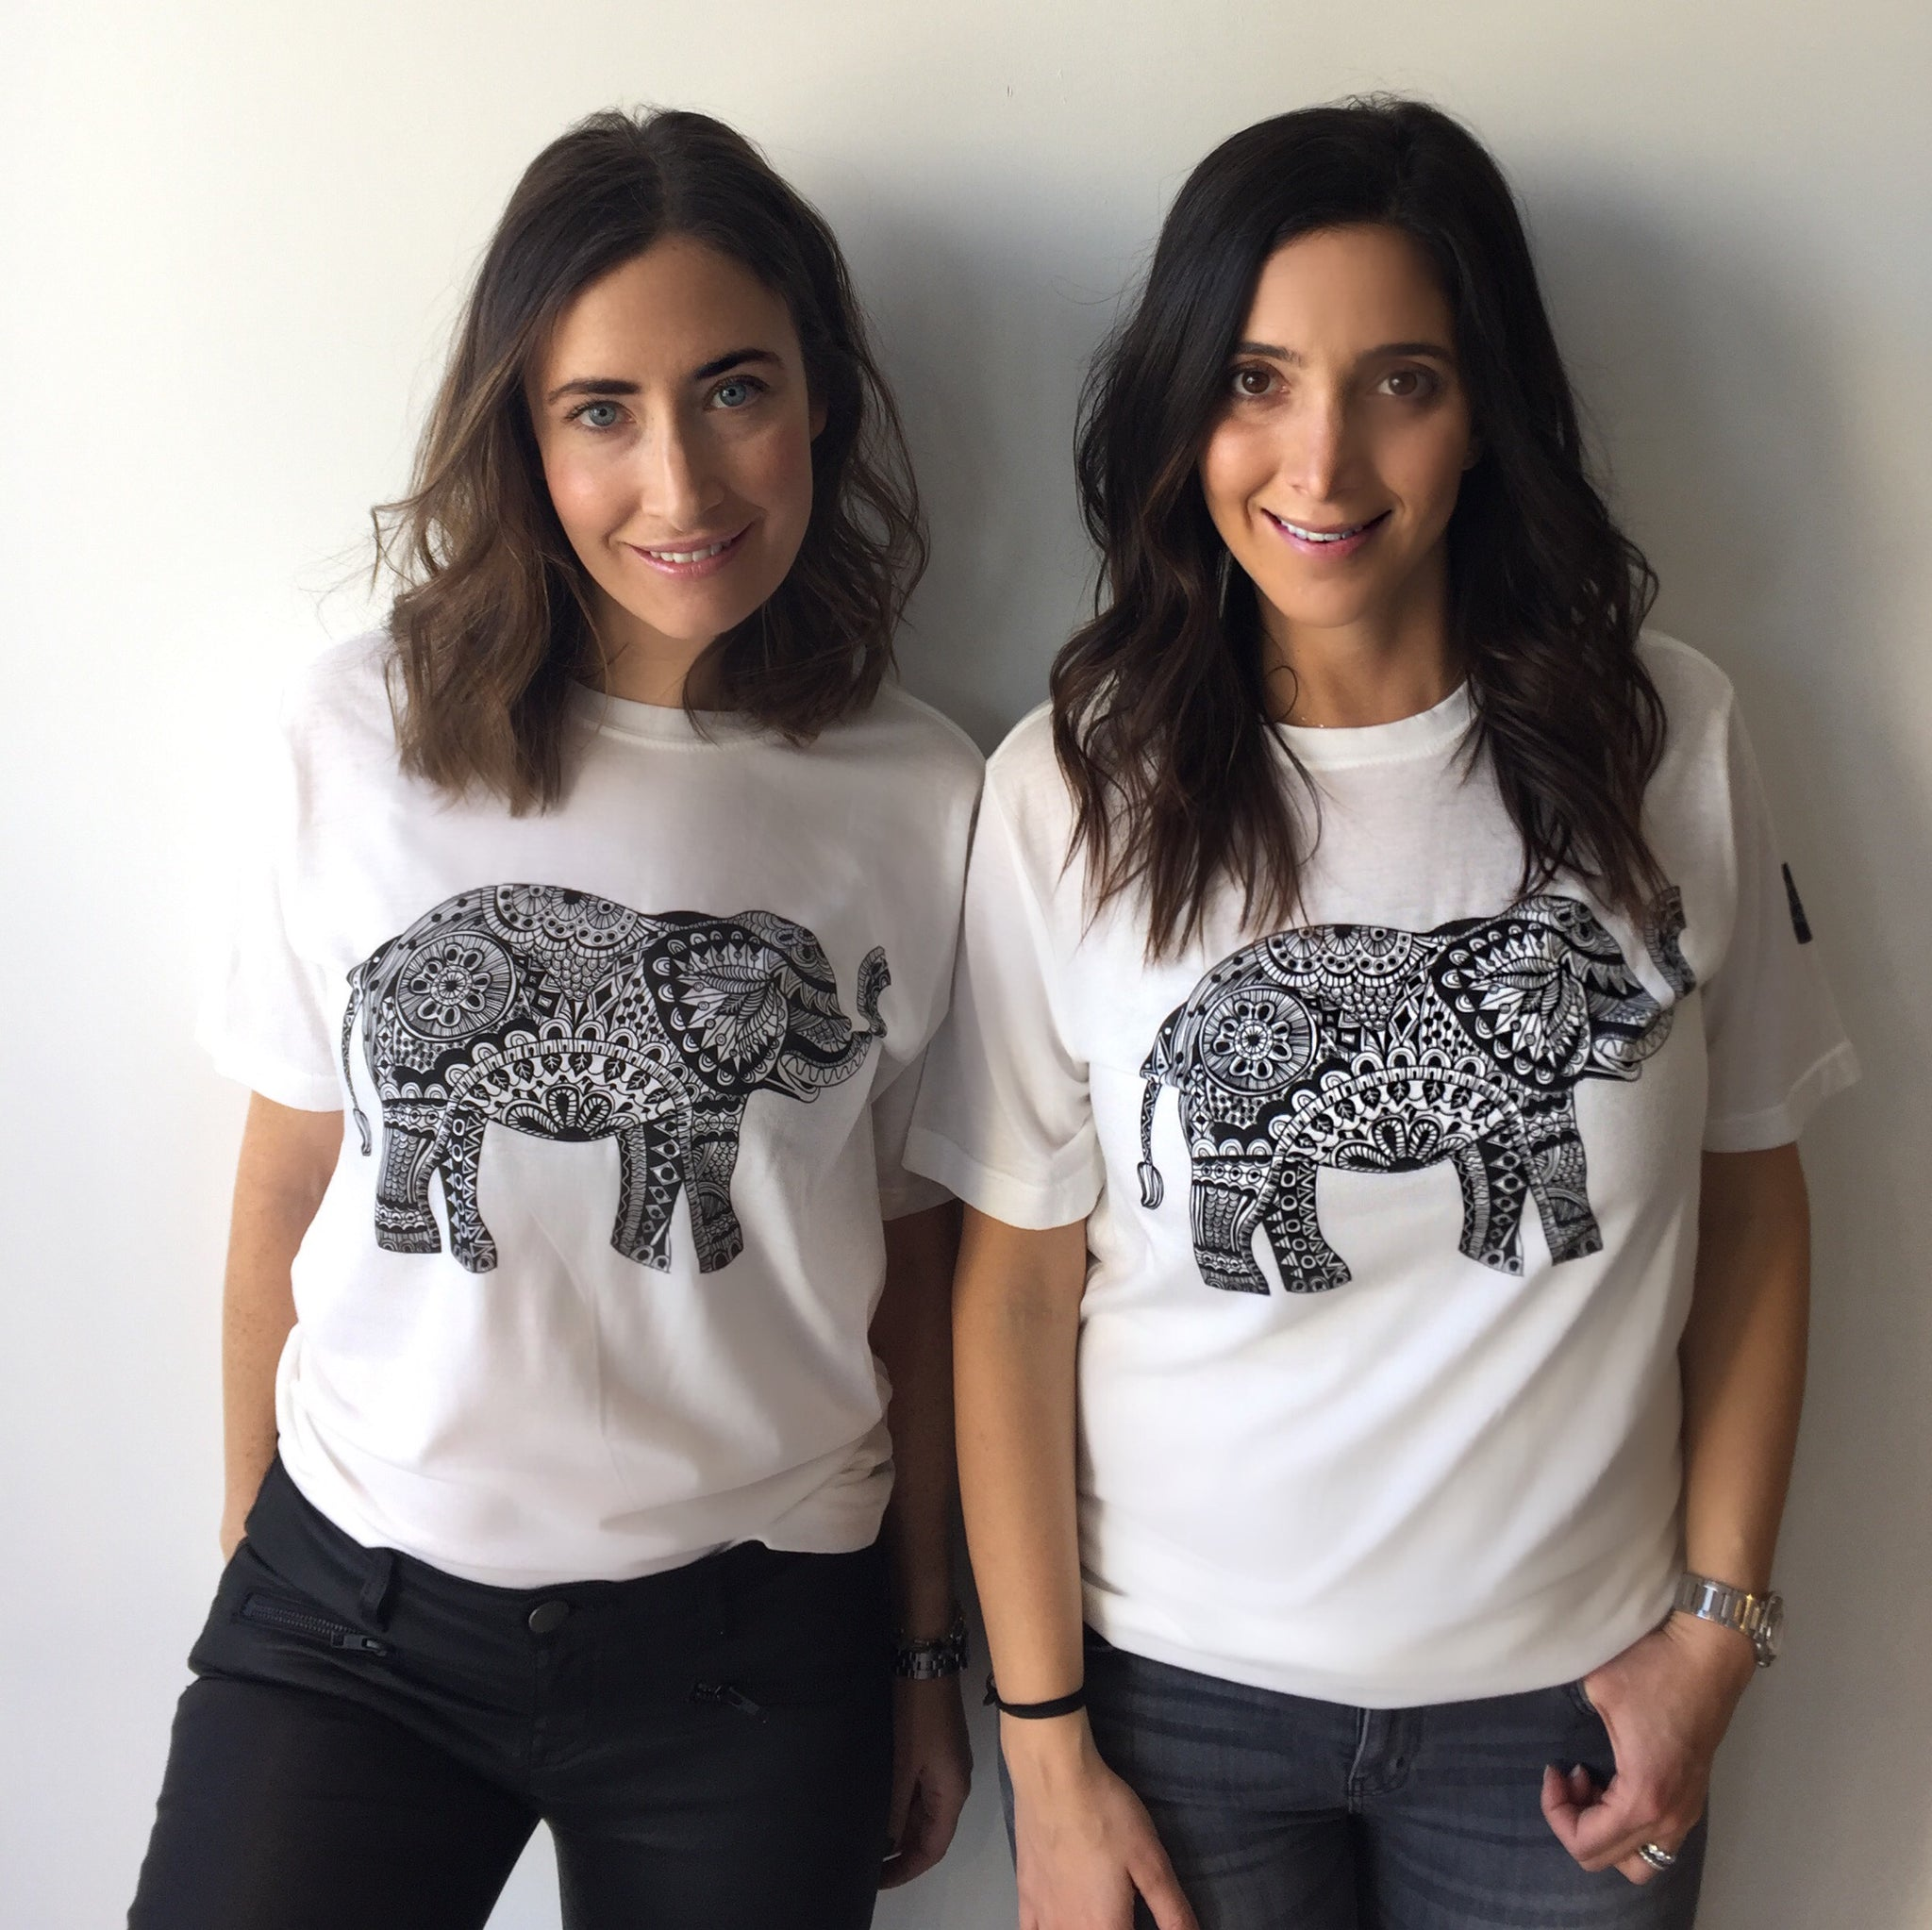 Lani and Lauren in The Dialogue Projects Tees